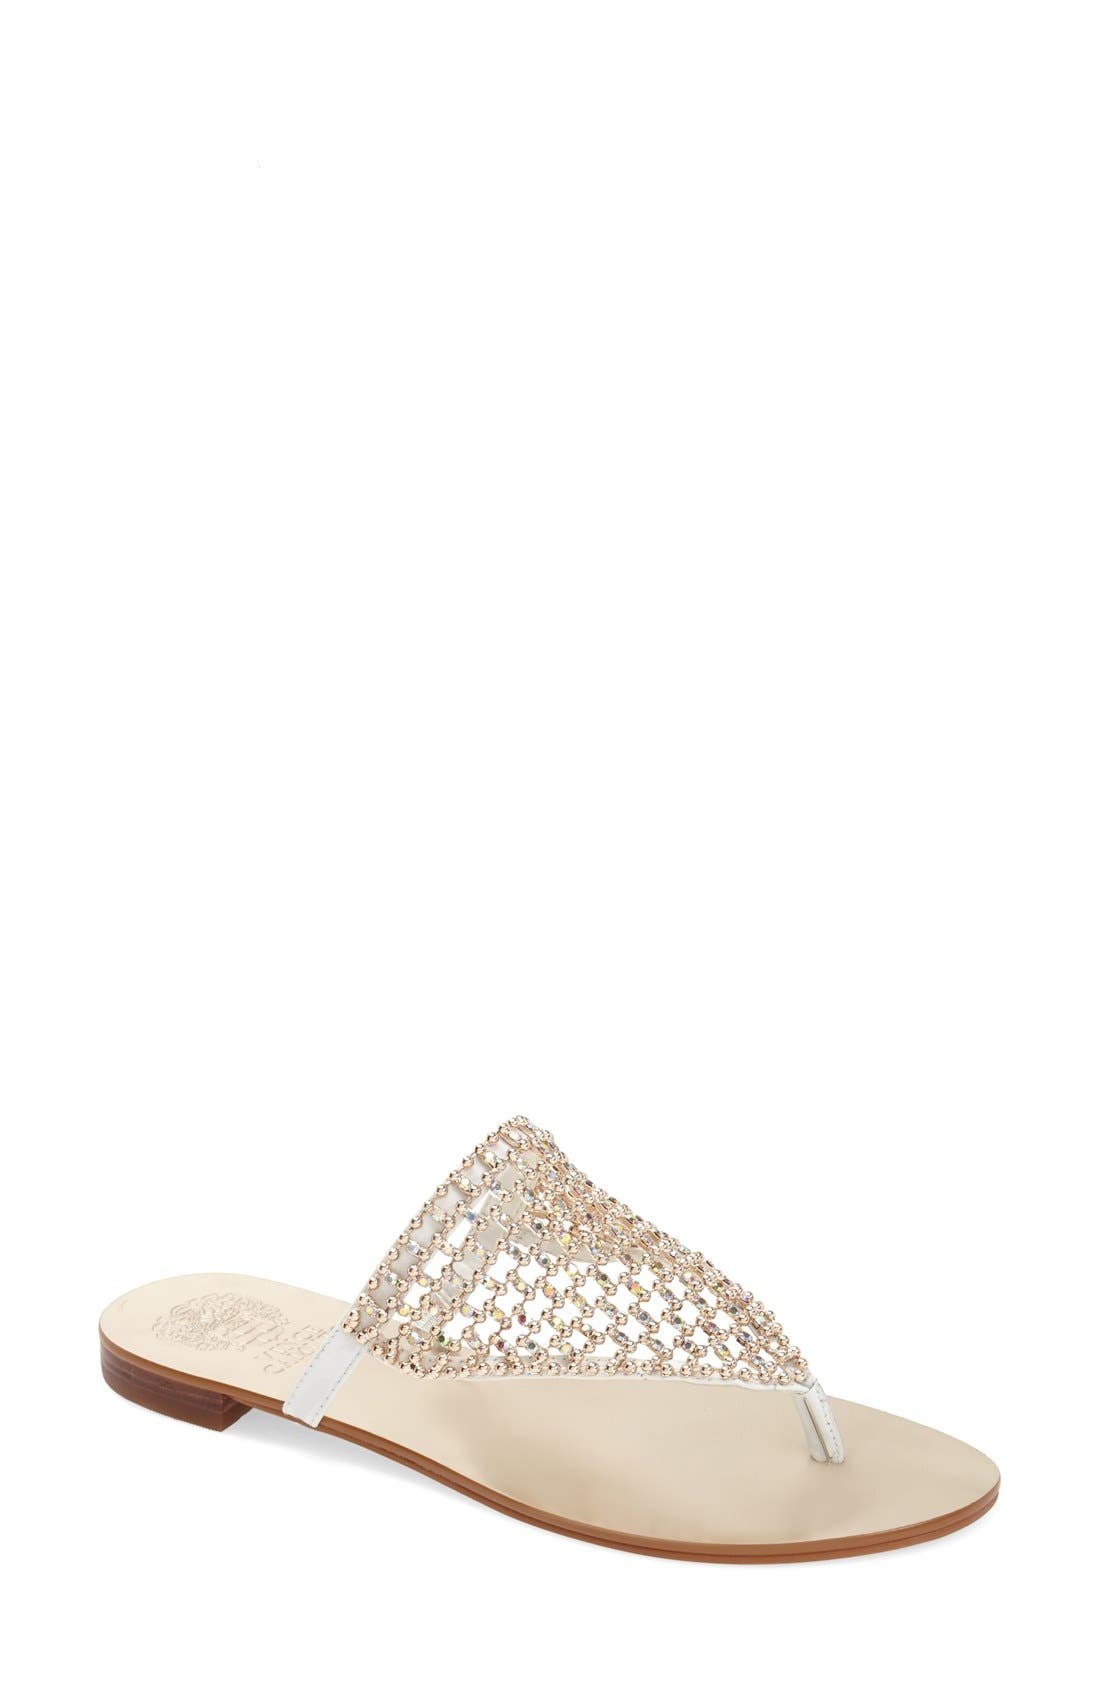 Alternate Image 1 Selected - Vince Camuto 'Mombo' Embellished Thong Sandal (Women)